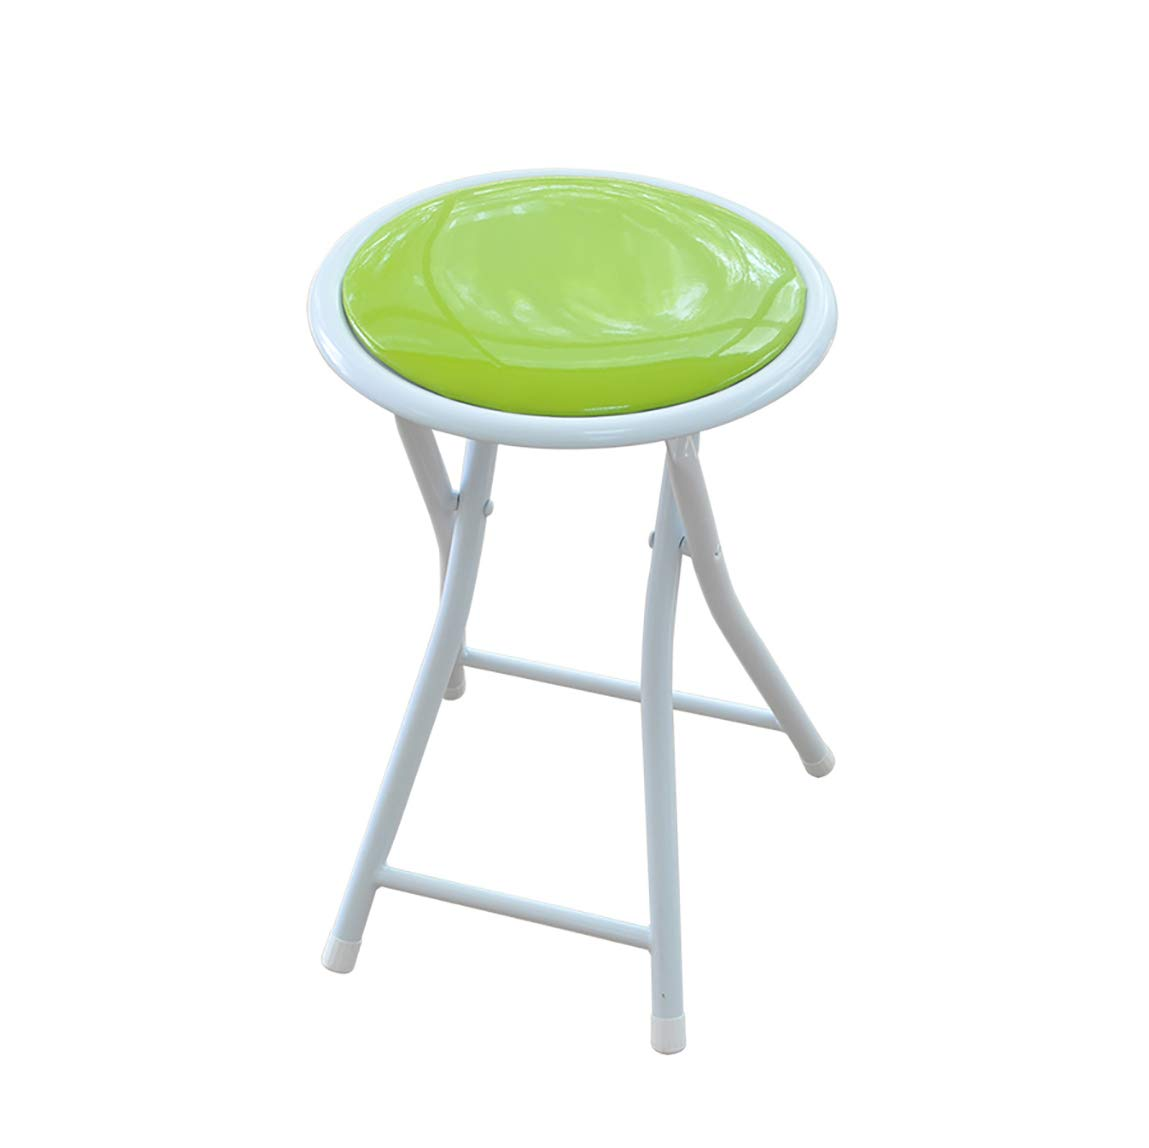 B XHLZDY Folding Chair, Dining Chair Folding Stool Portable Chair Small Round Bench (30×30×43cm) (color   B)